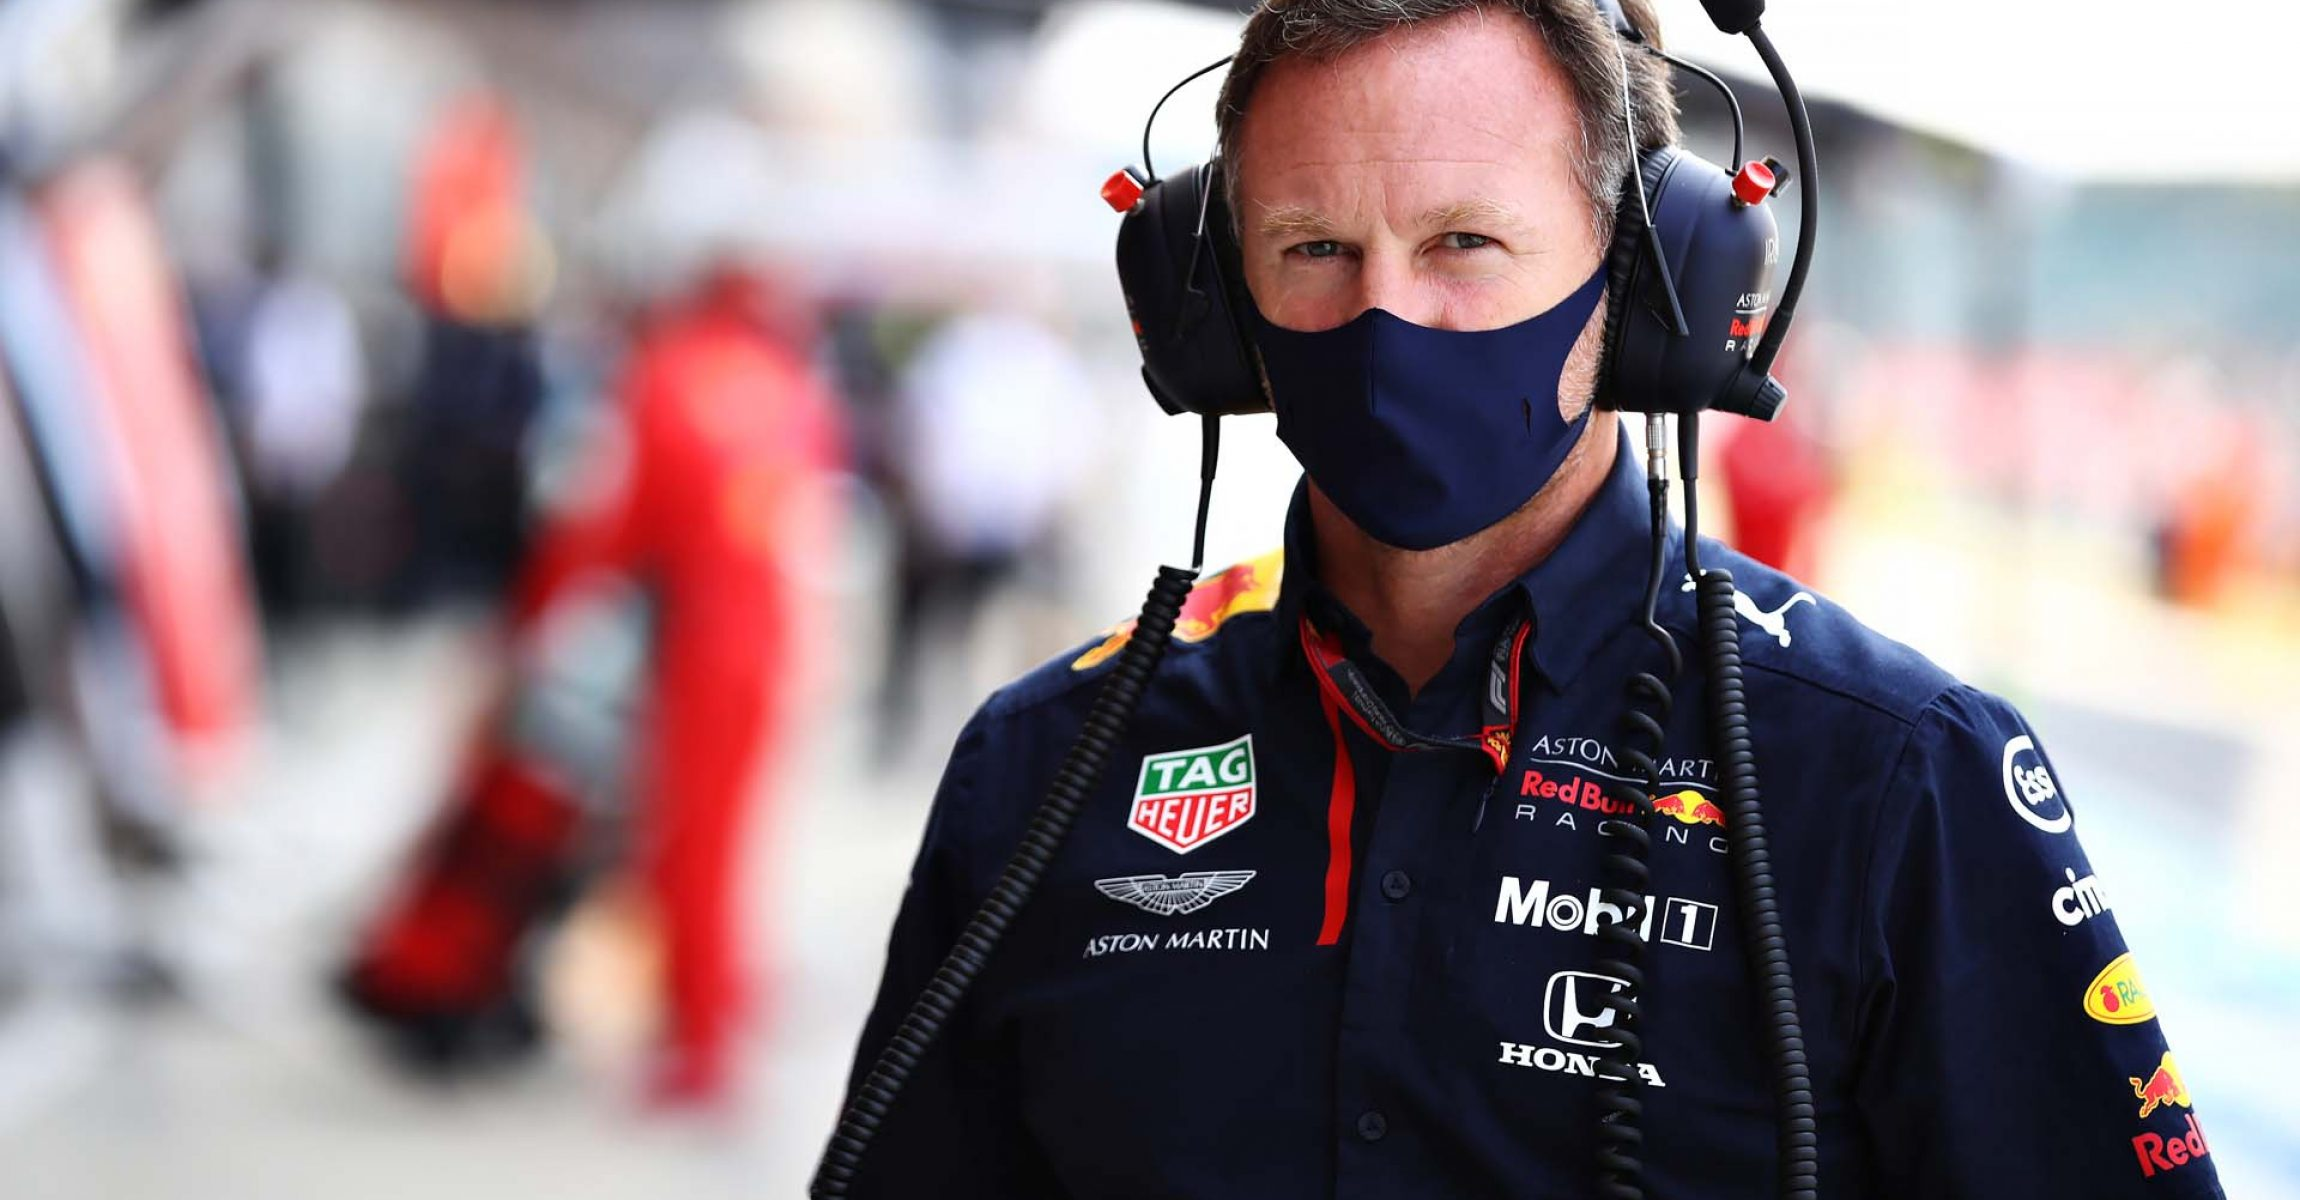 NORTHAMPTON, ENGLAND - AUGUST 09: Red Bull Racing Team Principal Christian Horner looks on in the Pitlane before the F1 70th Anniversary Grand Prix at Silverstone on August 09, 2020 in Northampton, England. (Photo by Mark Thompson/Getty Images)